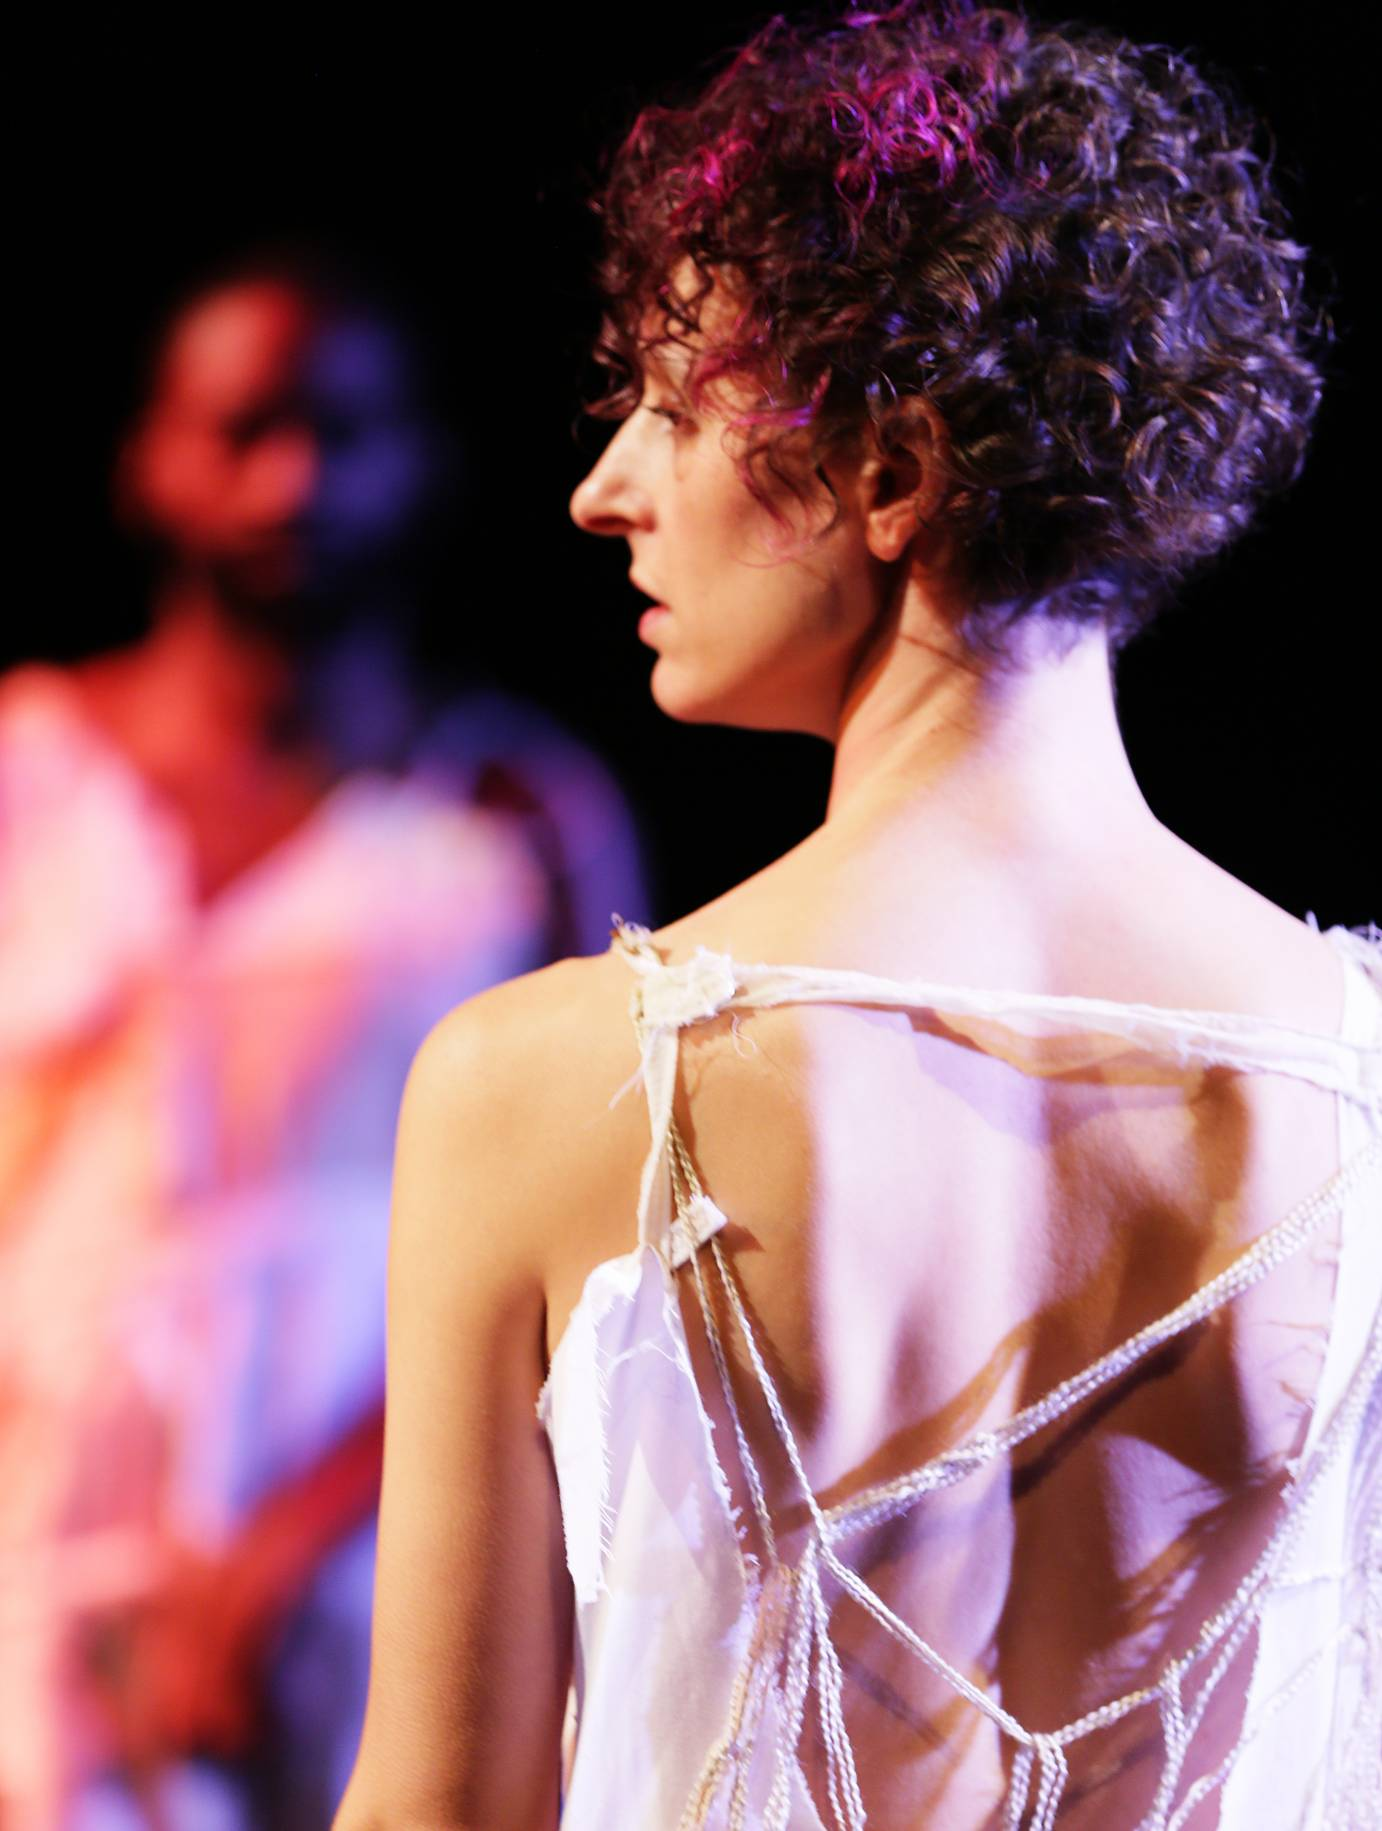 A profile of a female dancer with curly hair; another man is blurred in the background